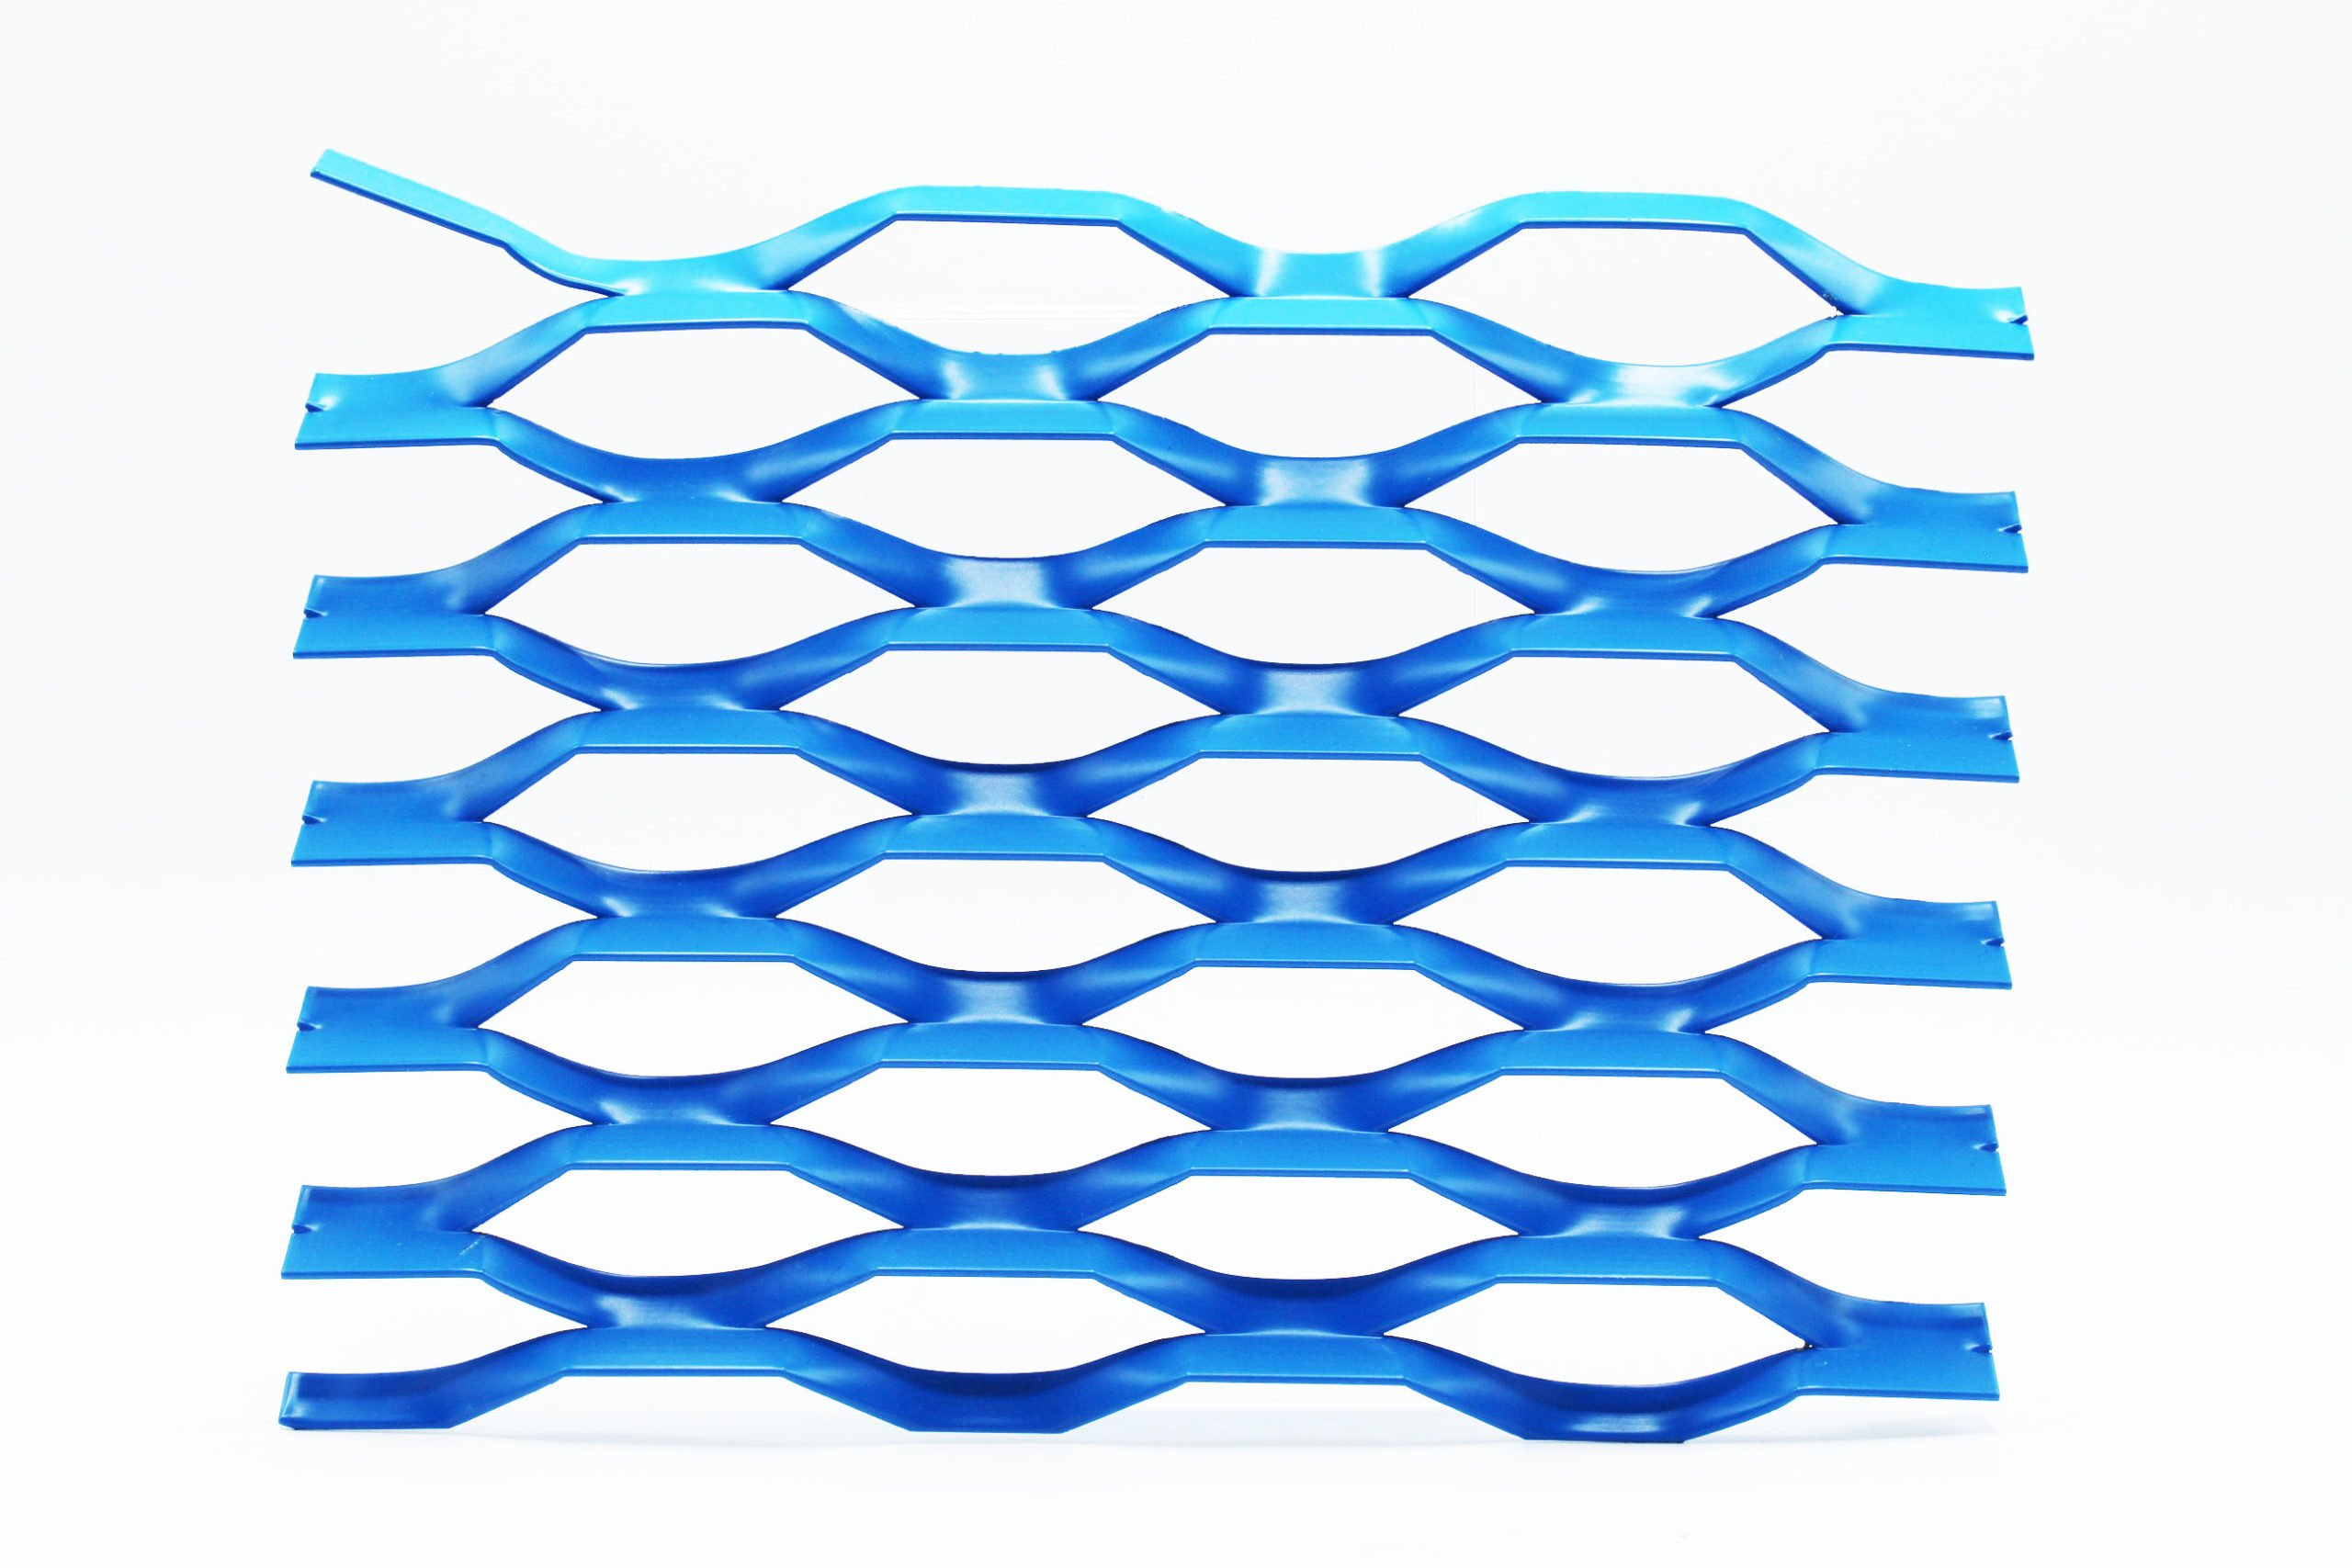 prater blue expanded architectural mesh